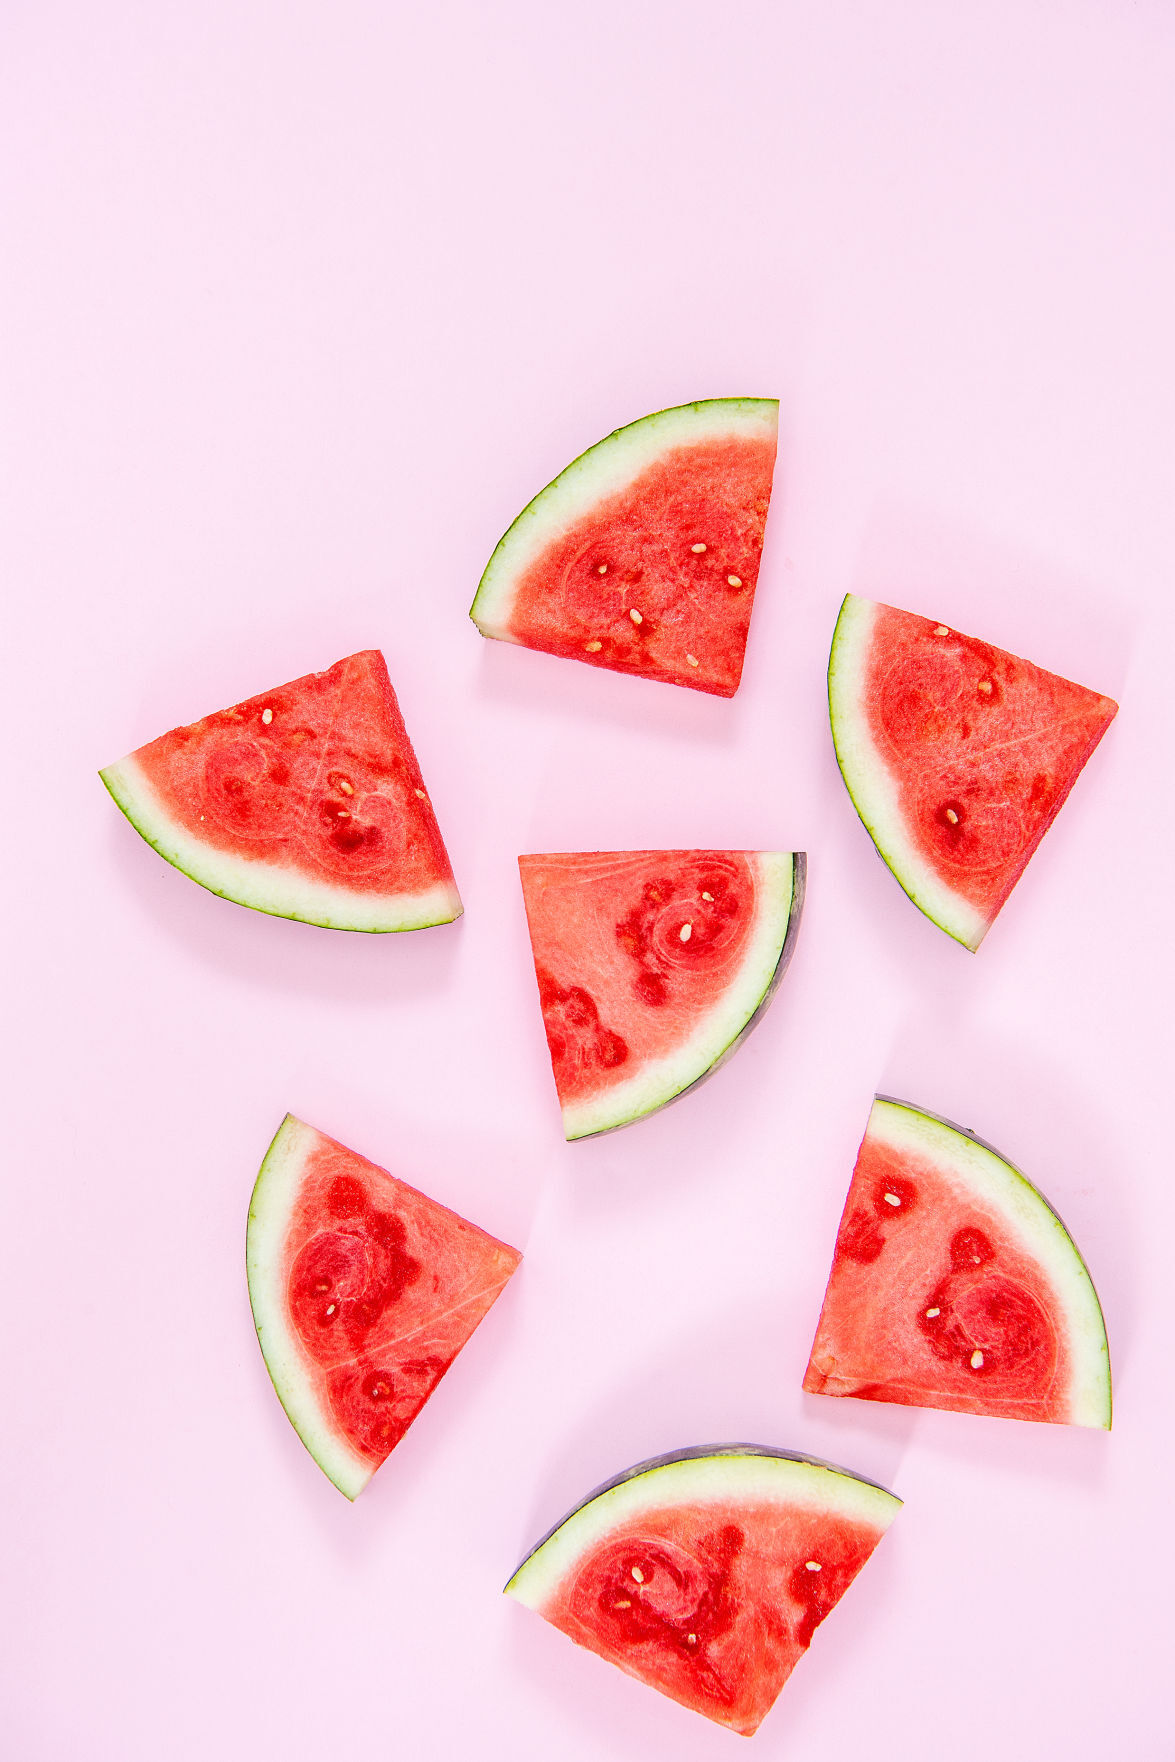 FOOD-PICK-WATERMELON-3-LA